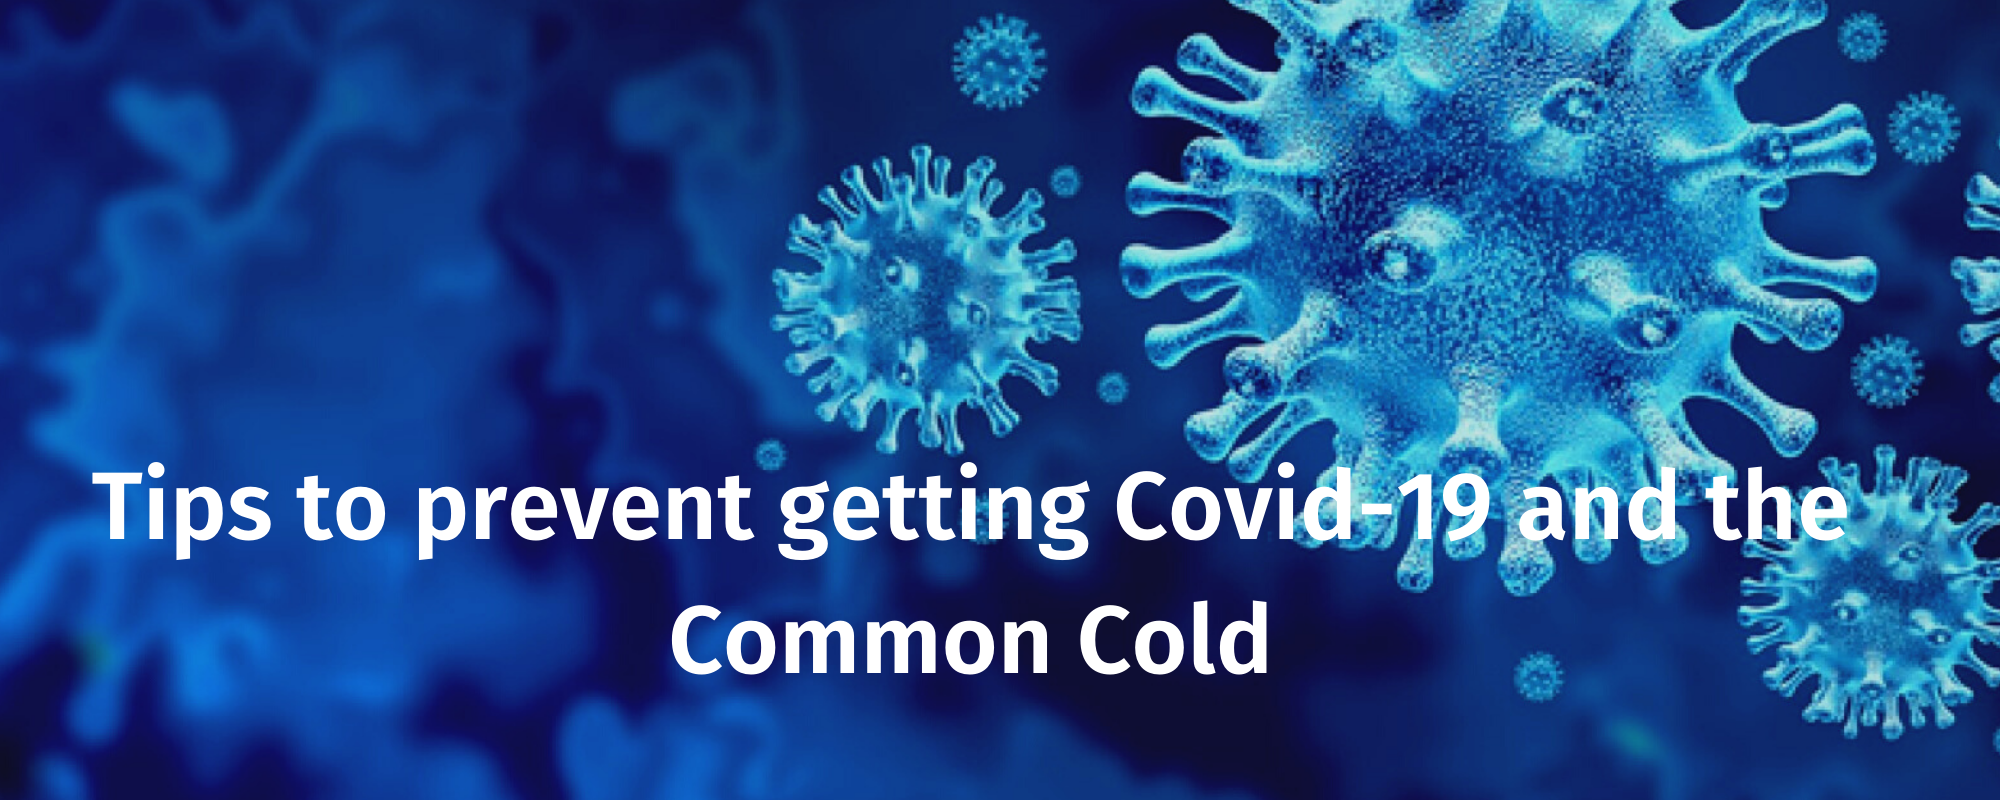 Tips to prevent getting Covid-19 and the Common Cold